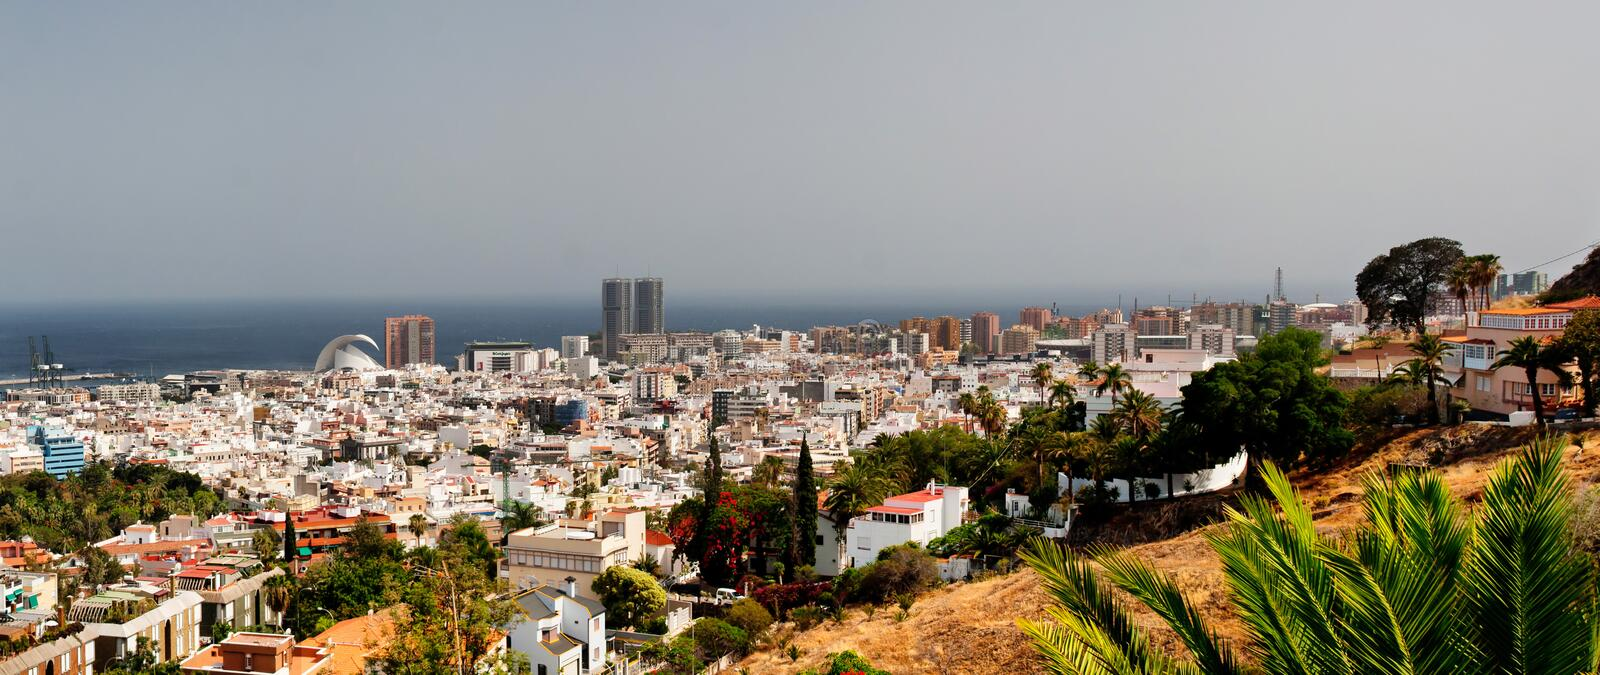 Santa cruz de tenerife. Aerial view stock photos